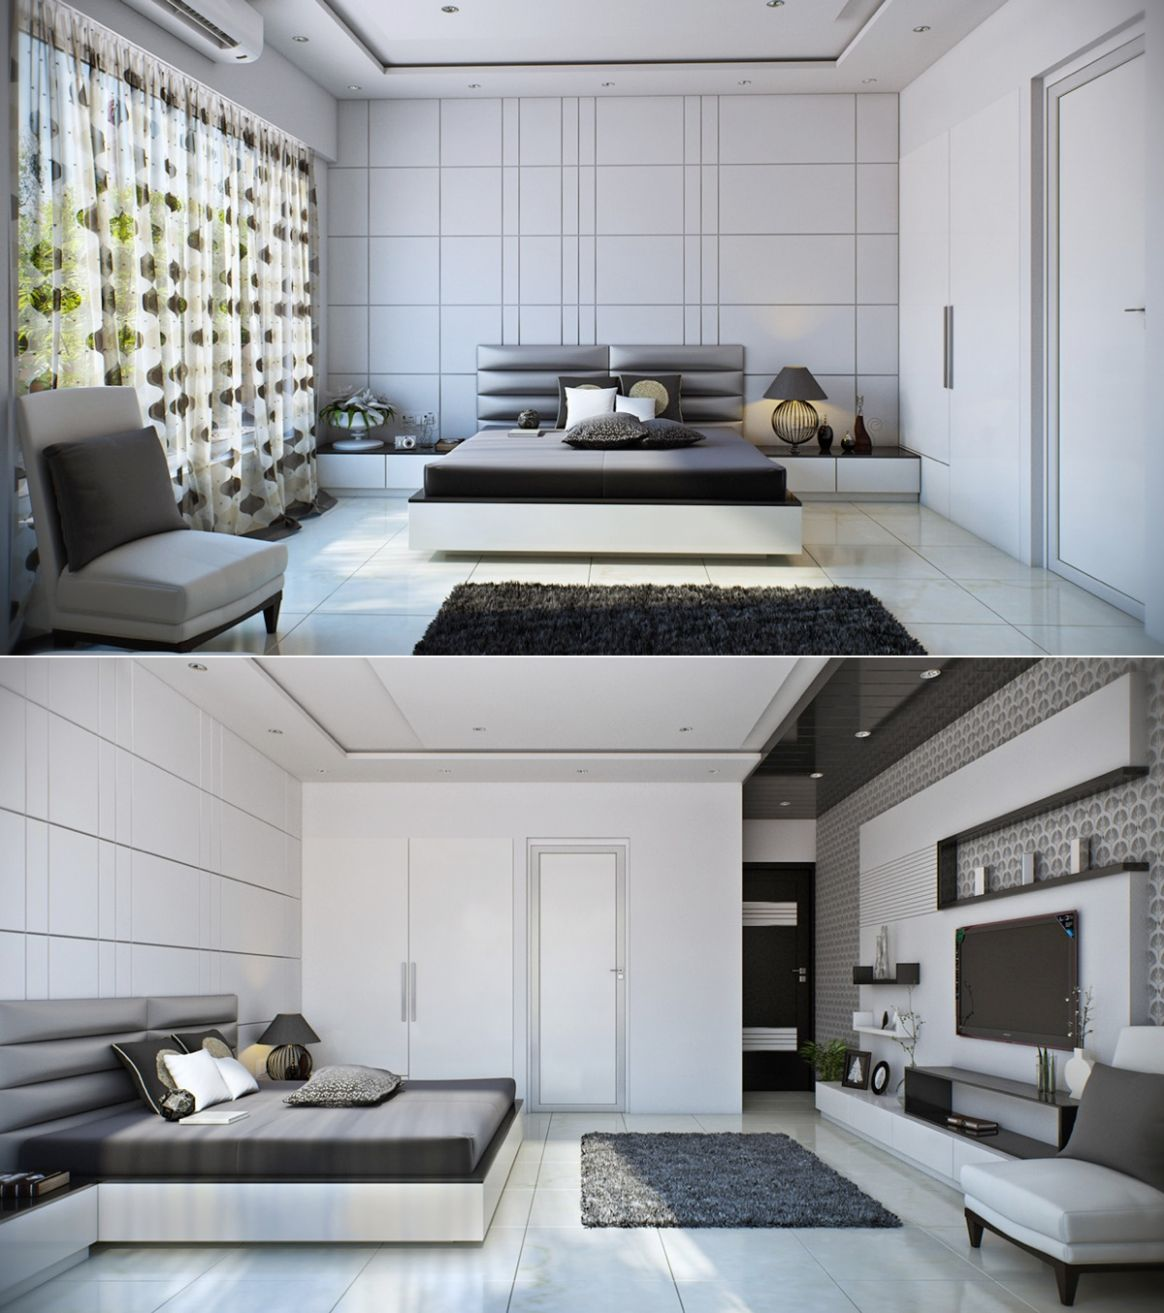 Modern Bedroom Design Ideas for Rooms of Any Size - living room ideas 10 x 20